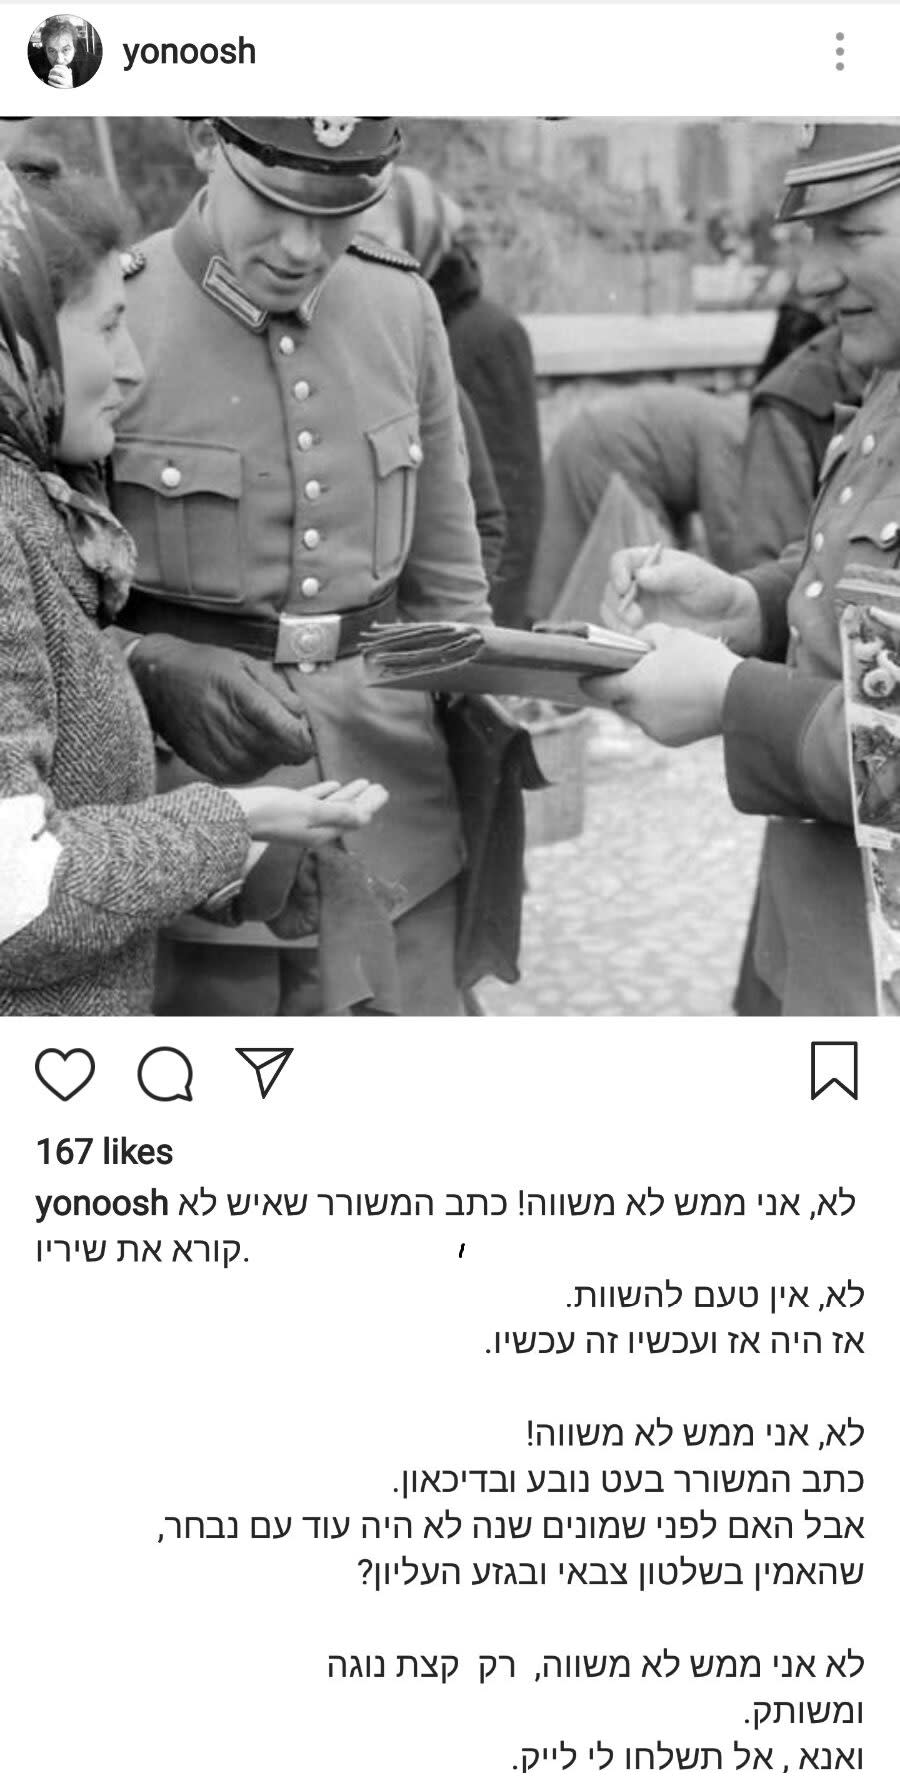 A post on social media by songwriter Yehonatan Geffen comparing the Israeli government to Nazi Germany. (INSTAGRAM SCREENSHOT)